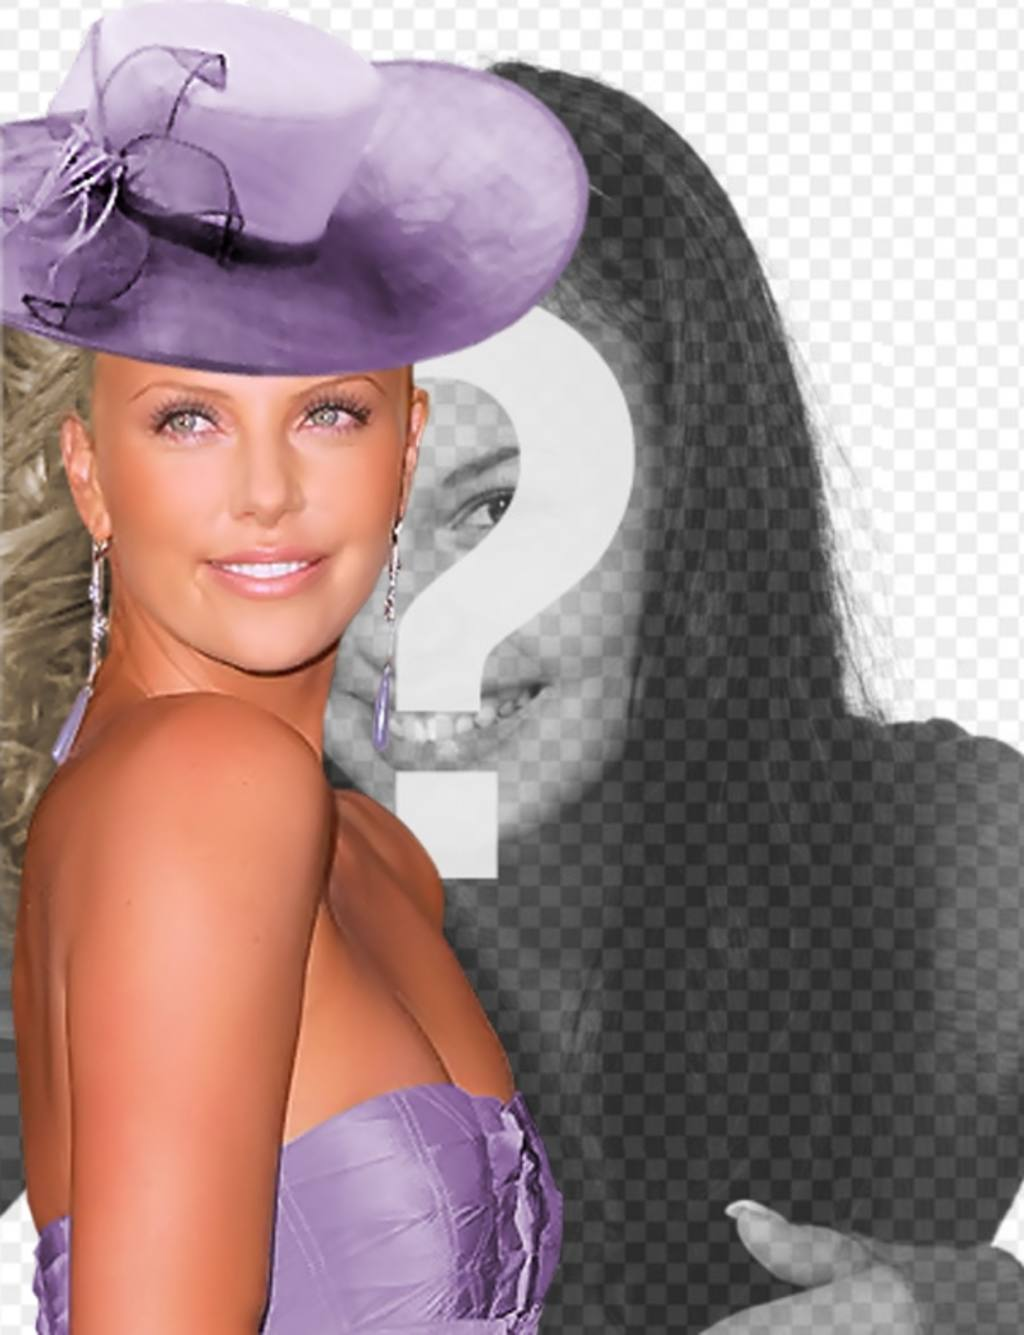 Create photomontages with Charlize Theron gala dressed in a gown purple and a matching hat beside you